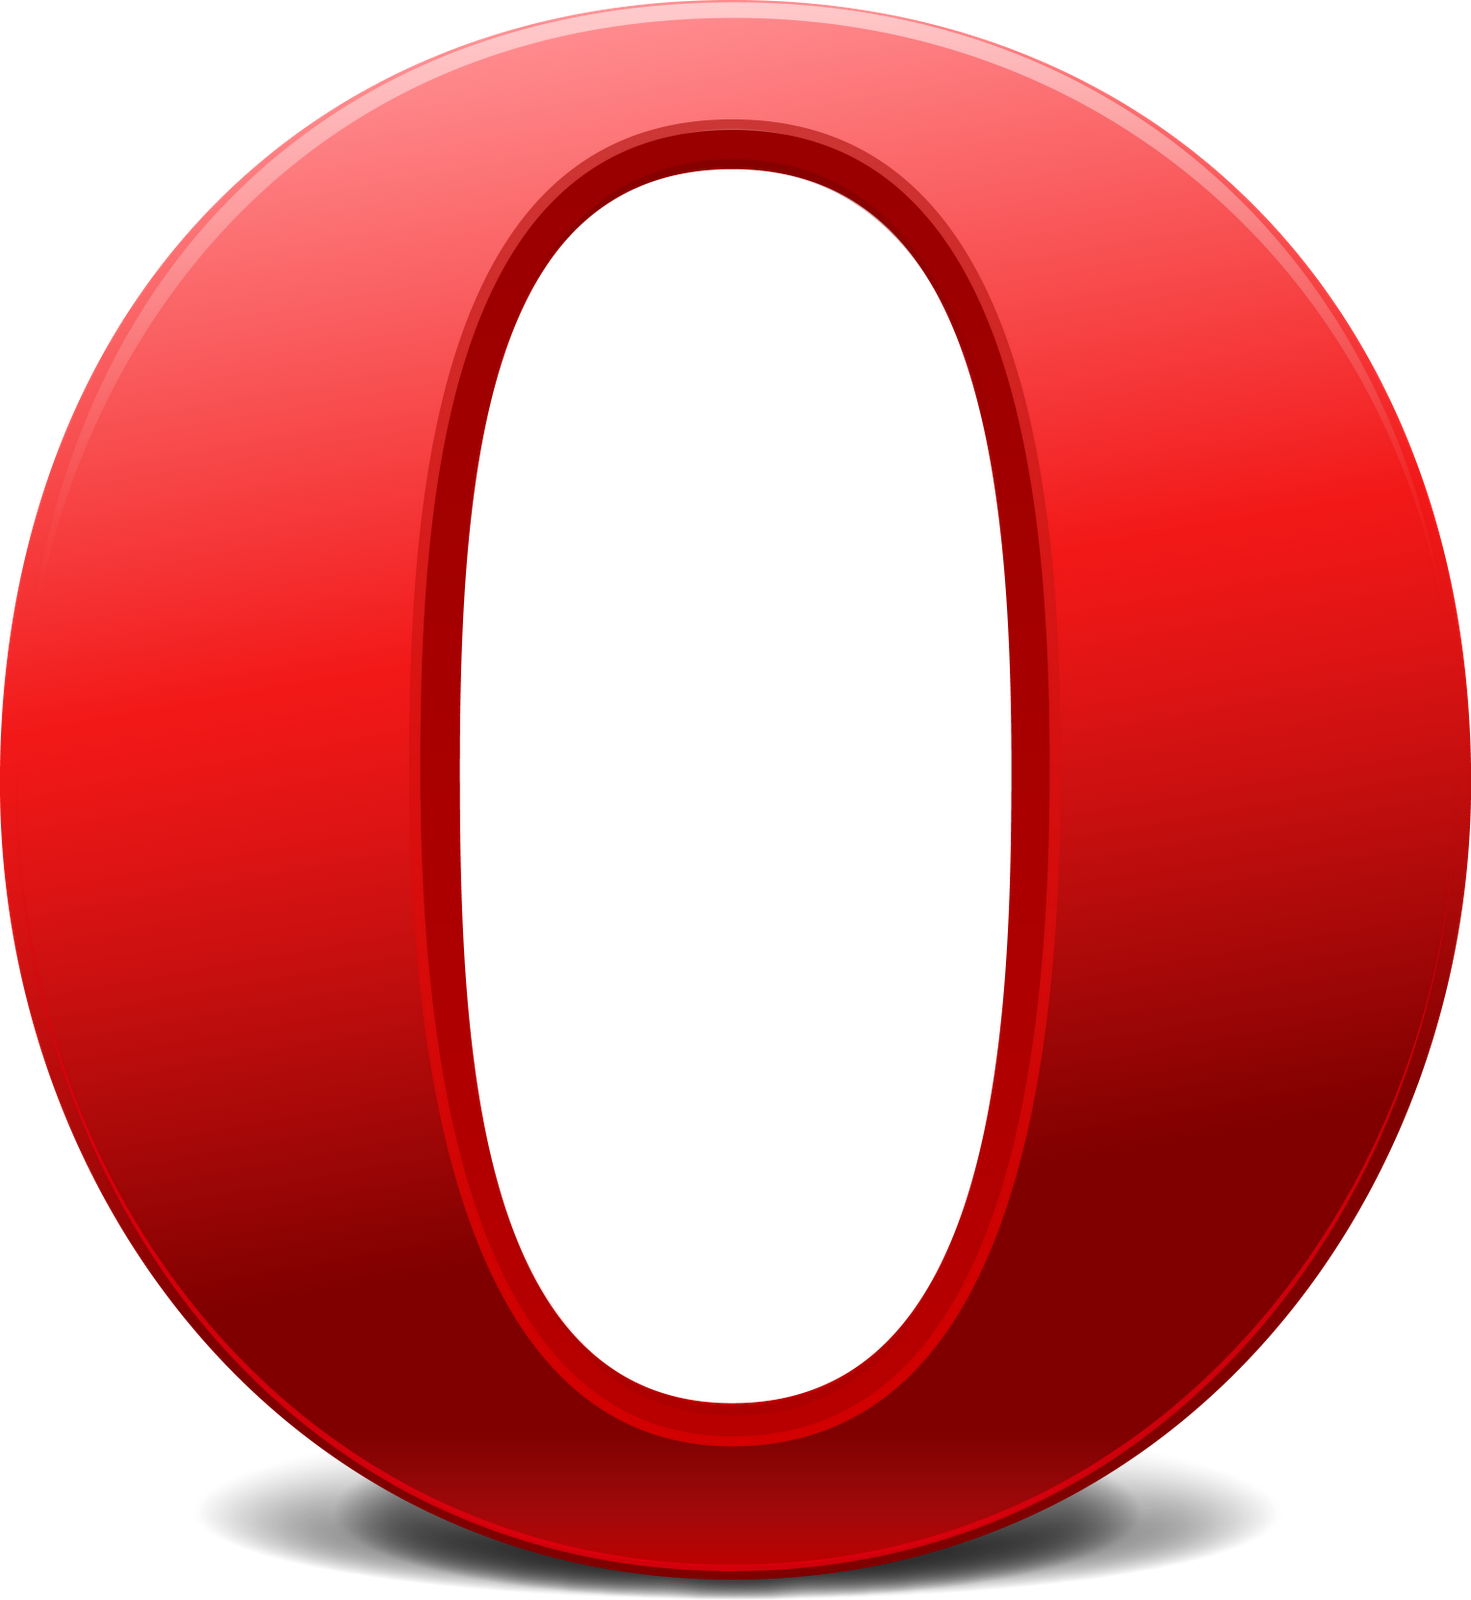 opera is a web browser and internet suite developed by opera software ...: tfy2012.blogspot.com/2012/07/opera-browser.html